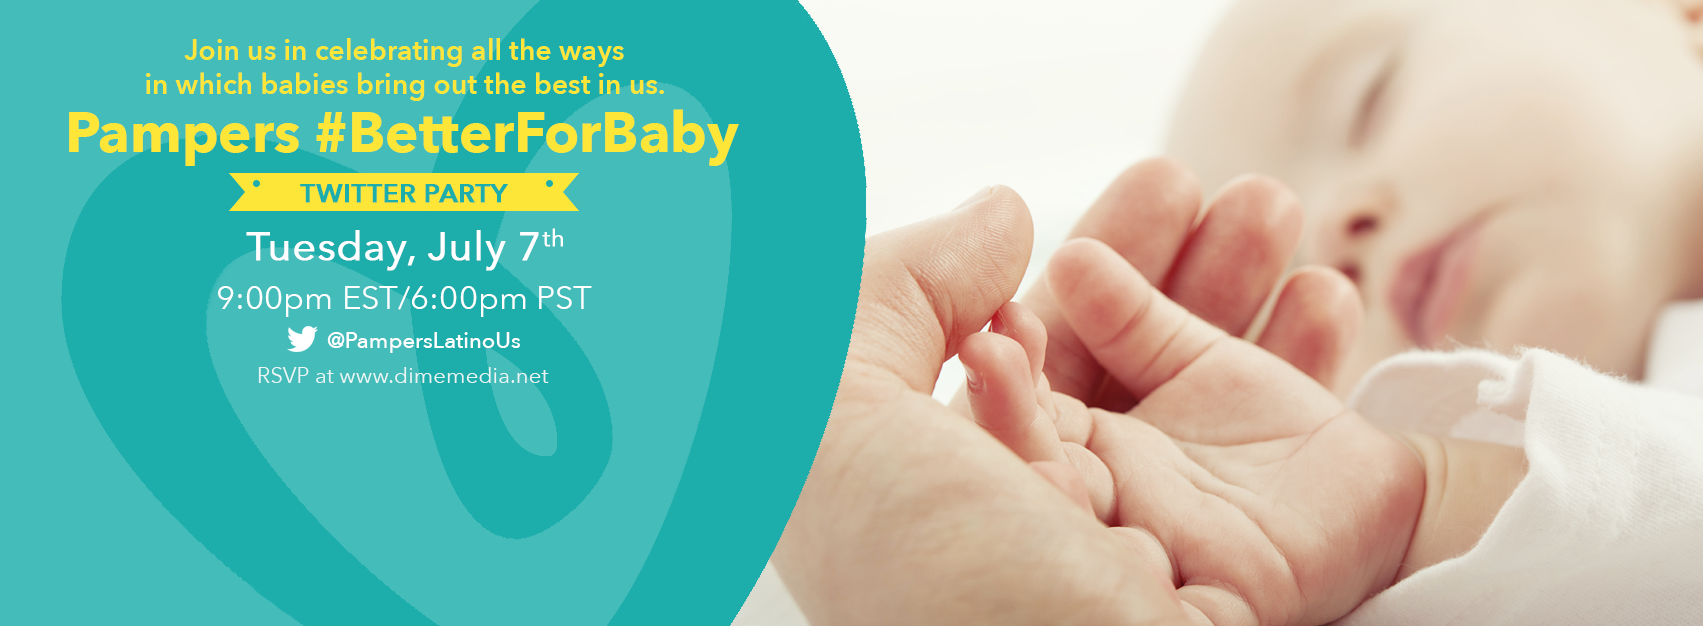 Pampers-BetterForBaby-Twitter-Party-Invite_B.png